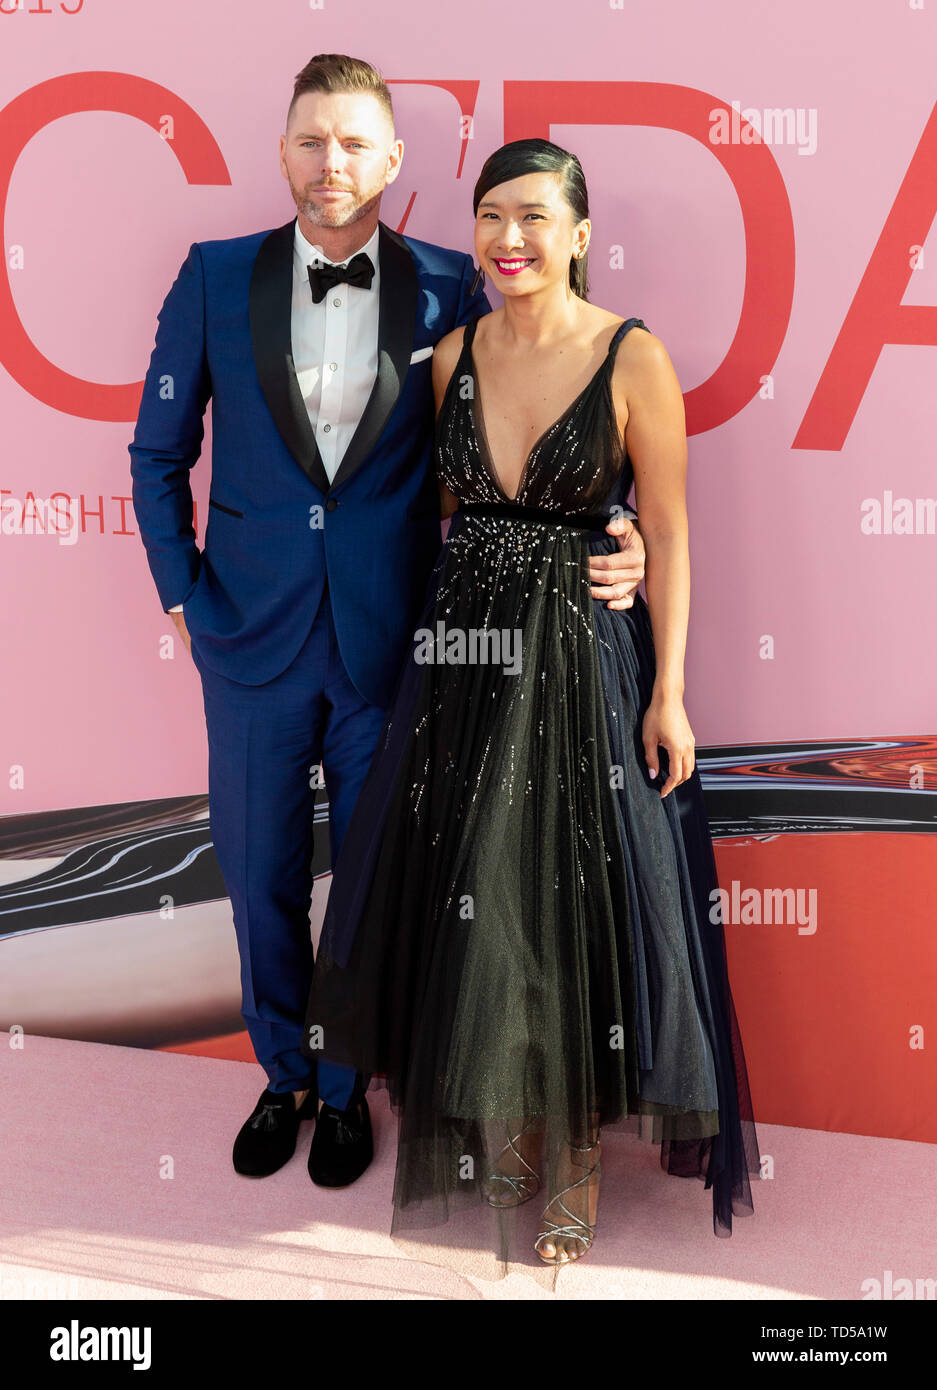 New York, NY - June 03, 2019: Guests attend 2019 CFDA Fashion Awards at Brooklyn Museum - Stock Image